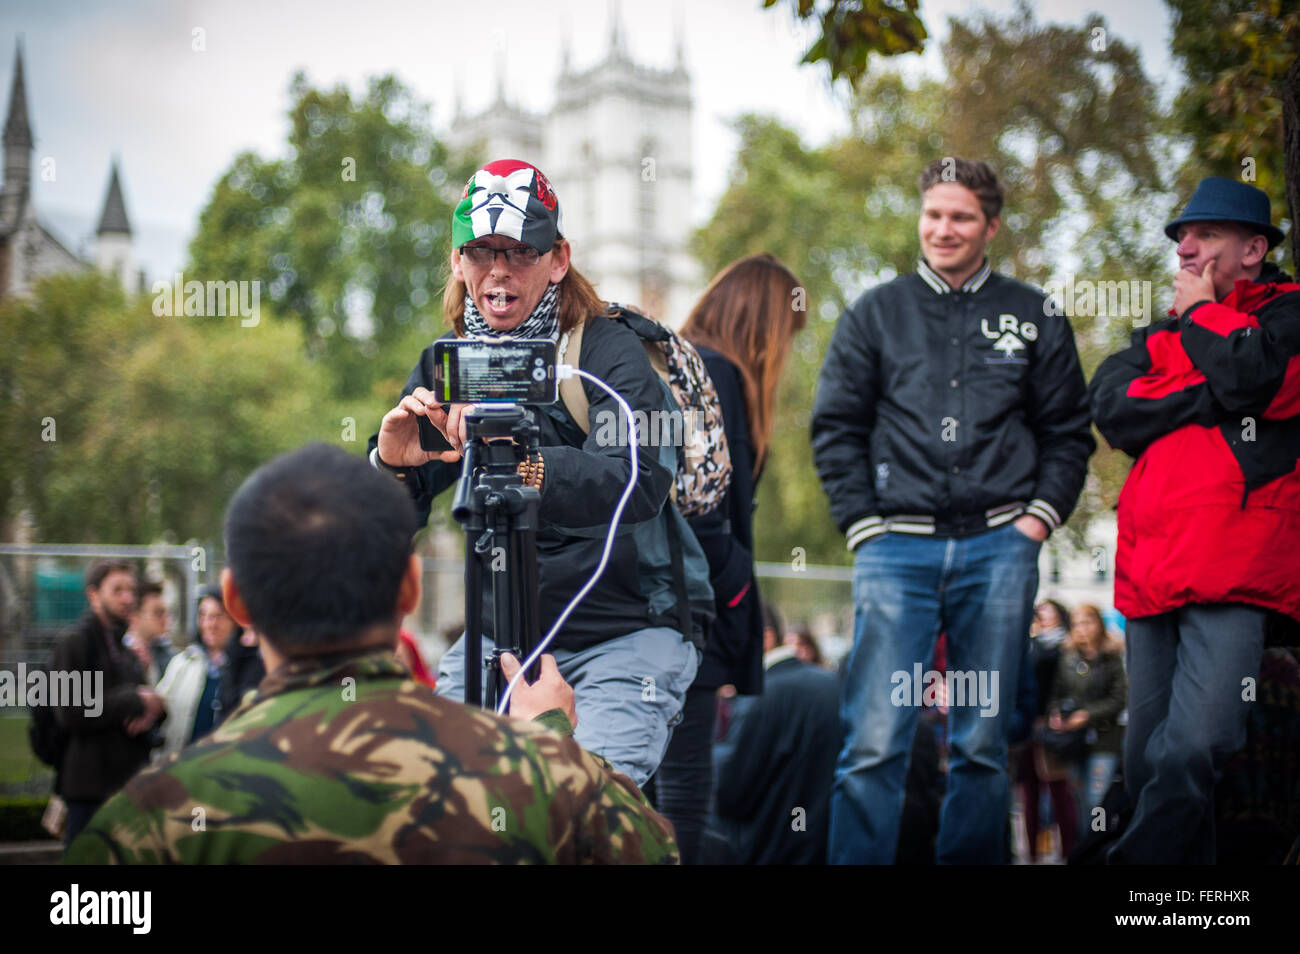 Activists enjoying themselves at Occupy Parliament Square, London - Stock Image